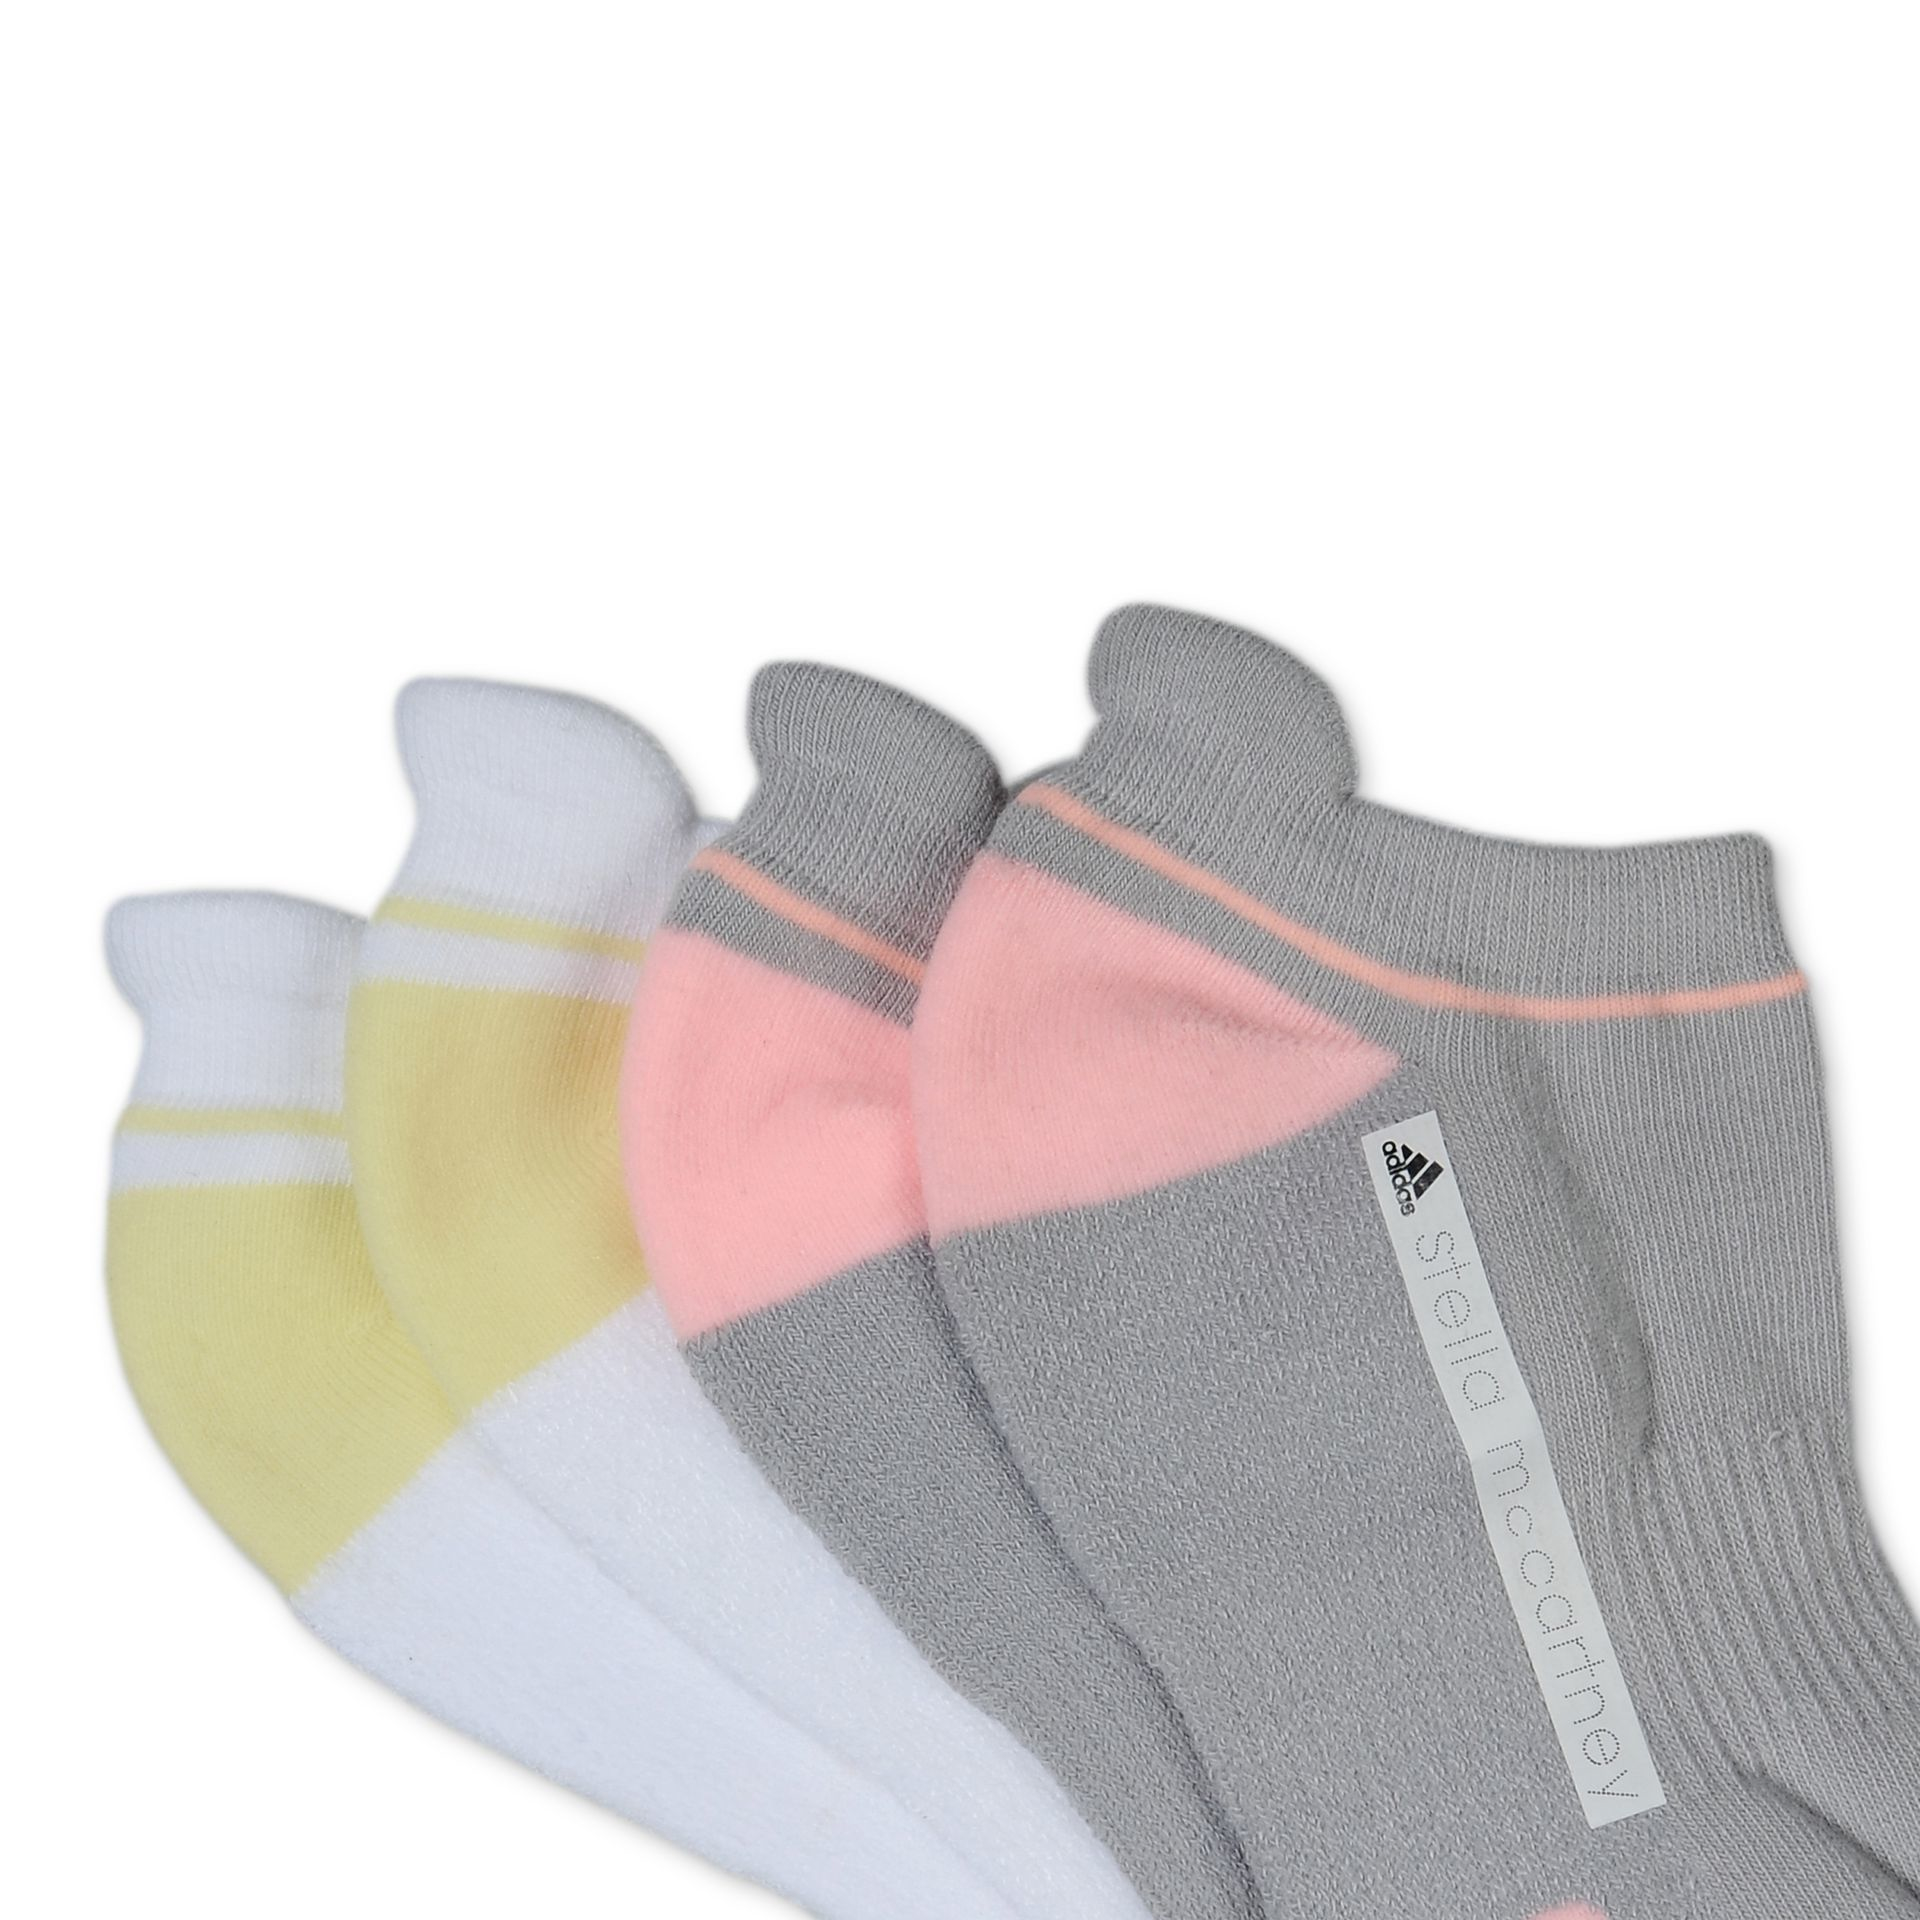 Adidas By Stella Mccartney floral trainer sock 2 pack Outlet Deals Fashion Style Low Shipping Online Clearance Amazon 7s5np